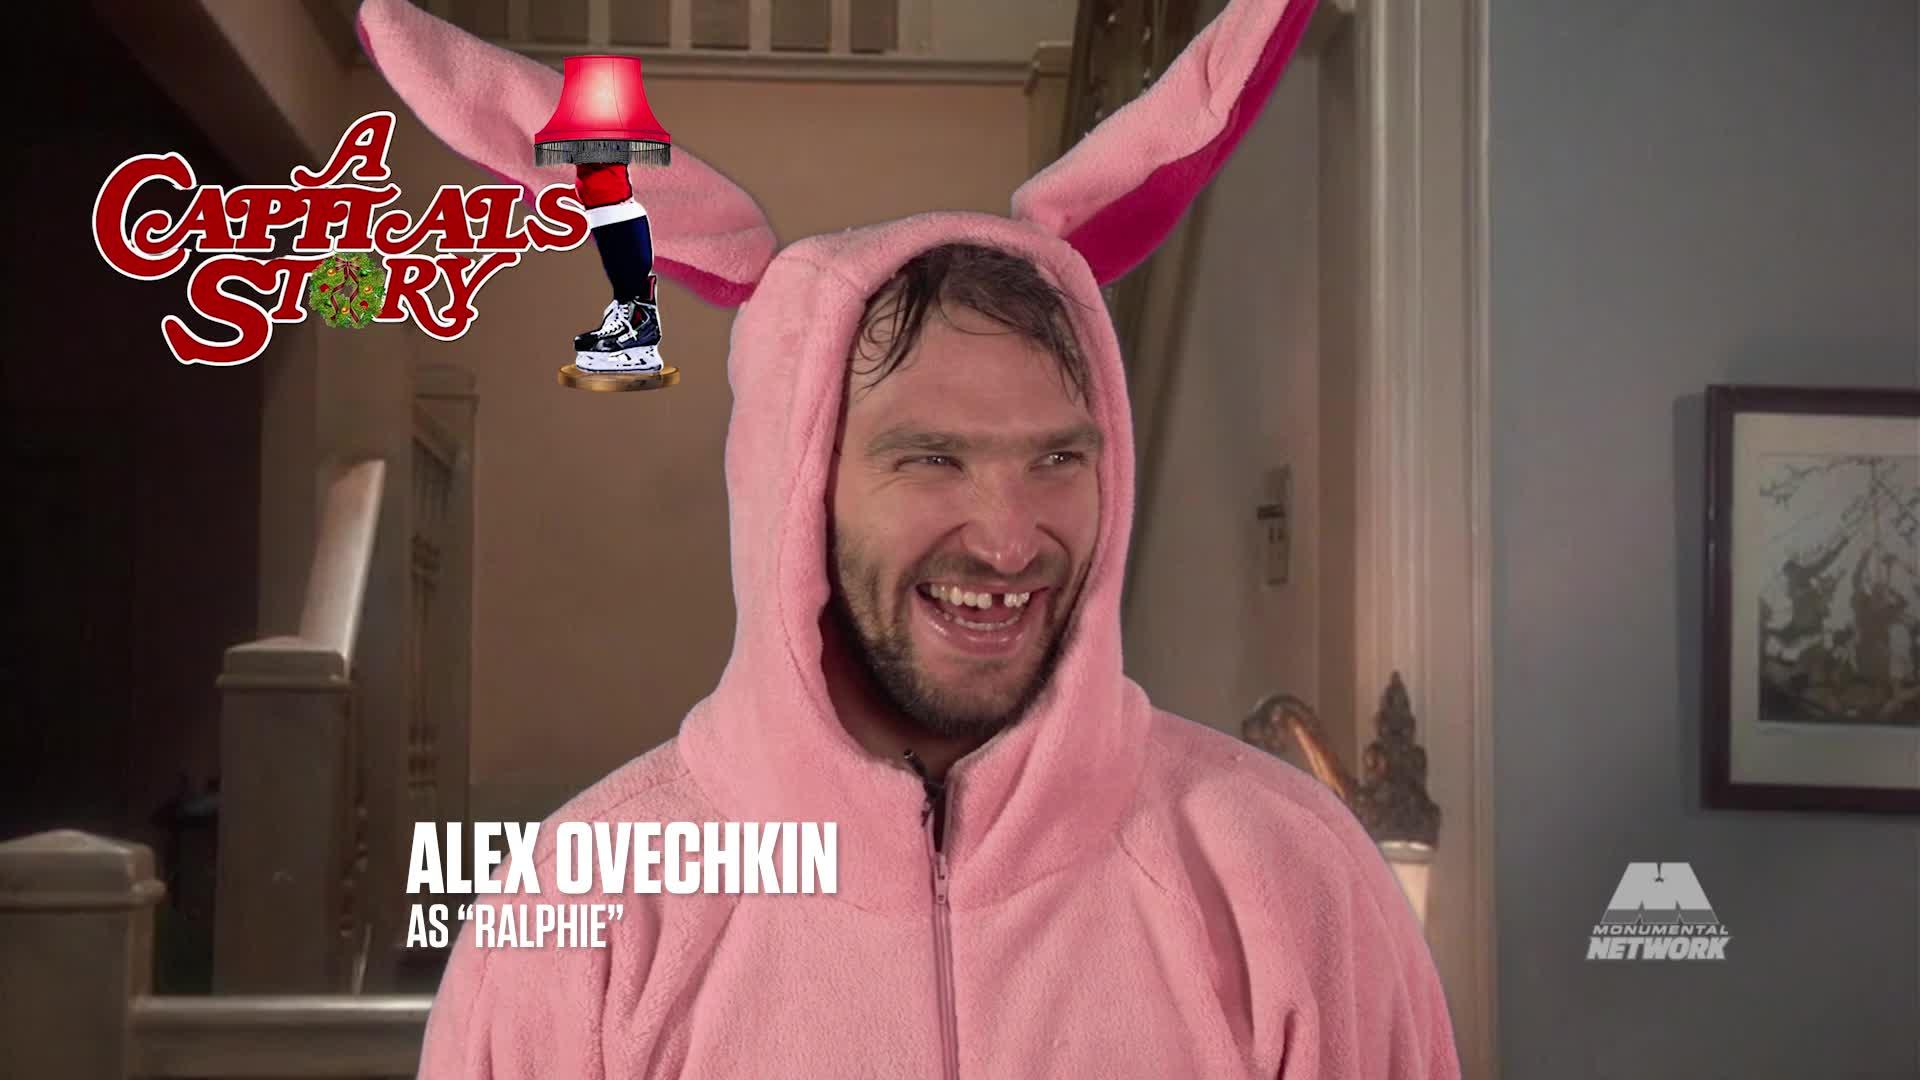 ovechkin gets points for reciting dialogue and missing a tooth but chara has the height advantage a six foot nine dude in a pink bunny costume